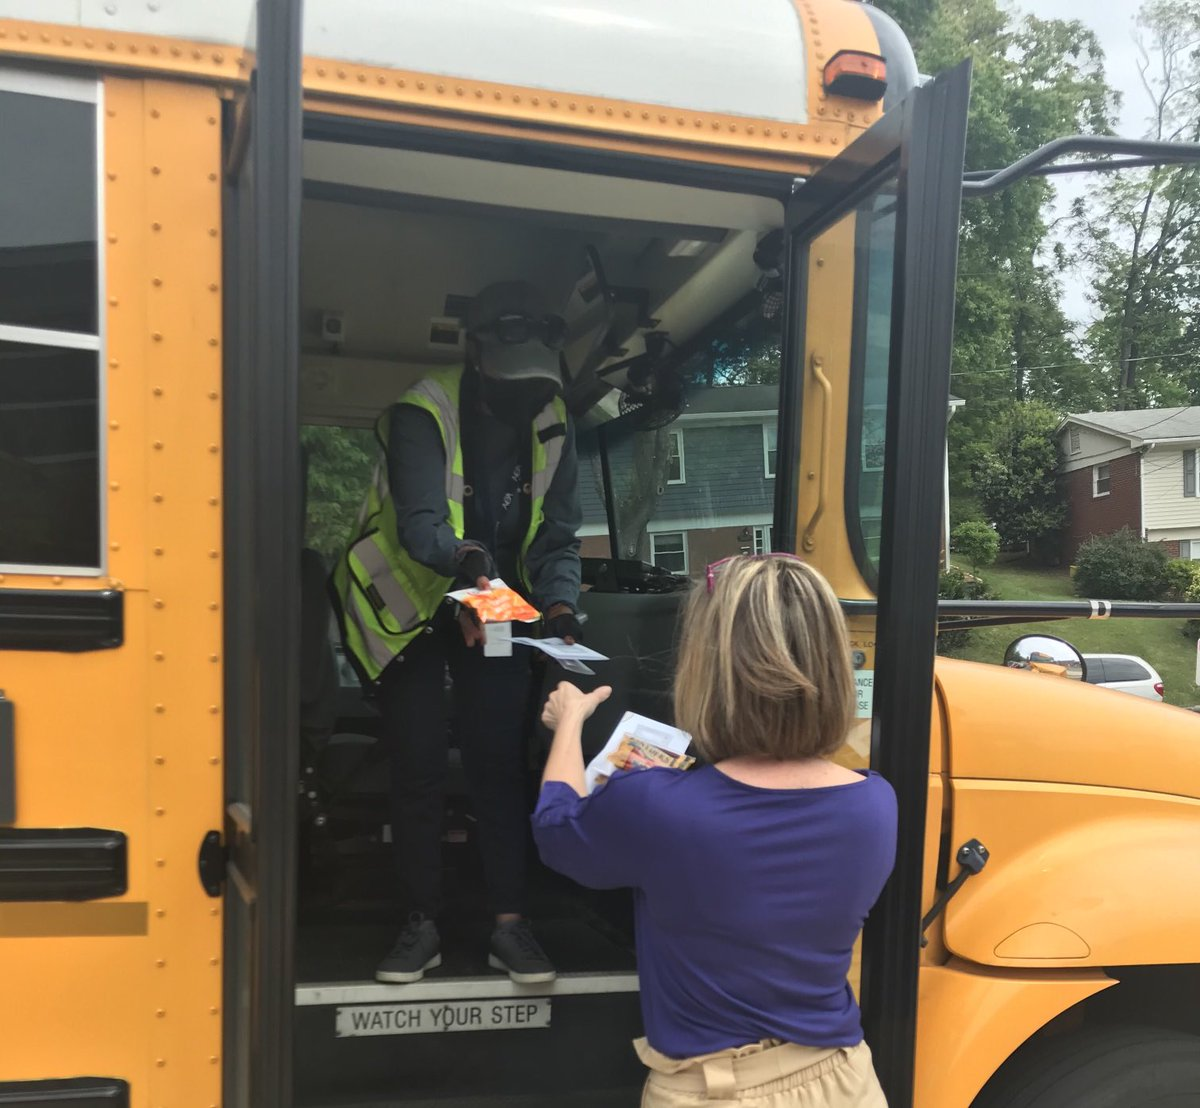 Ashlawn is so thankful for our wonderful bus drivers! <a target='_blank' href='https://t.co/QbAyKErpwG'>https://t.co/QbAyKErpwG</a>